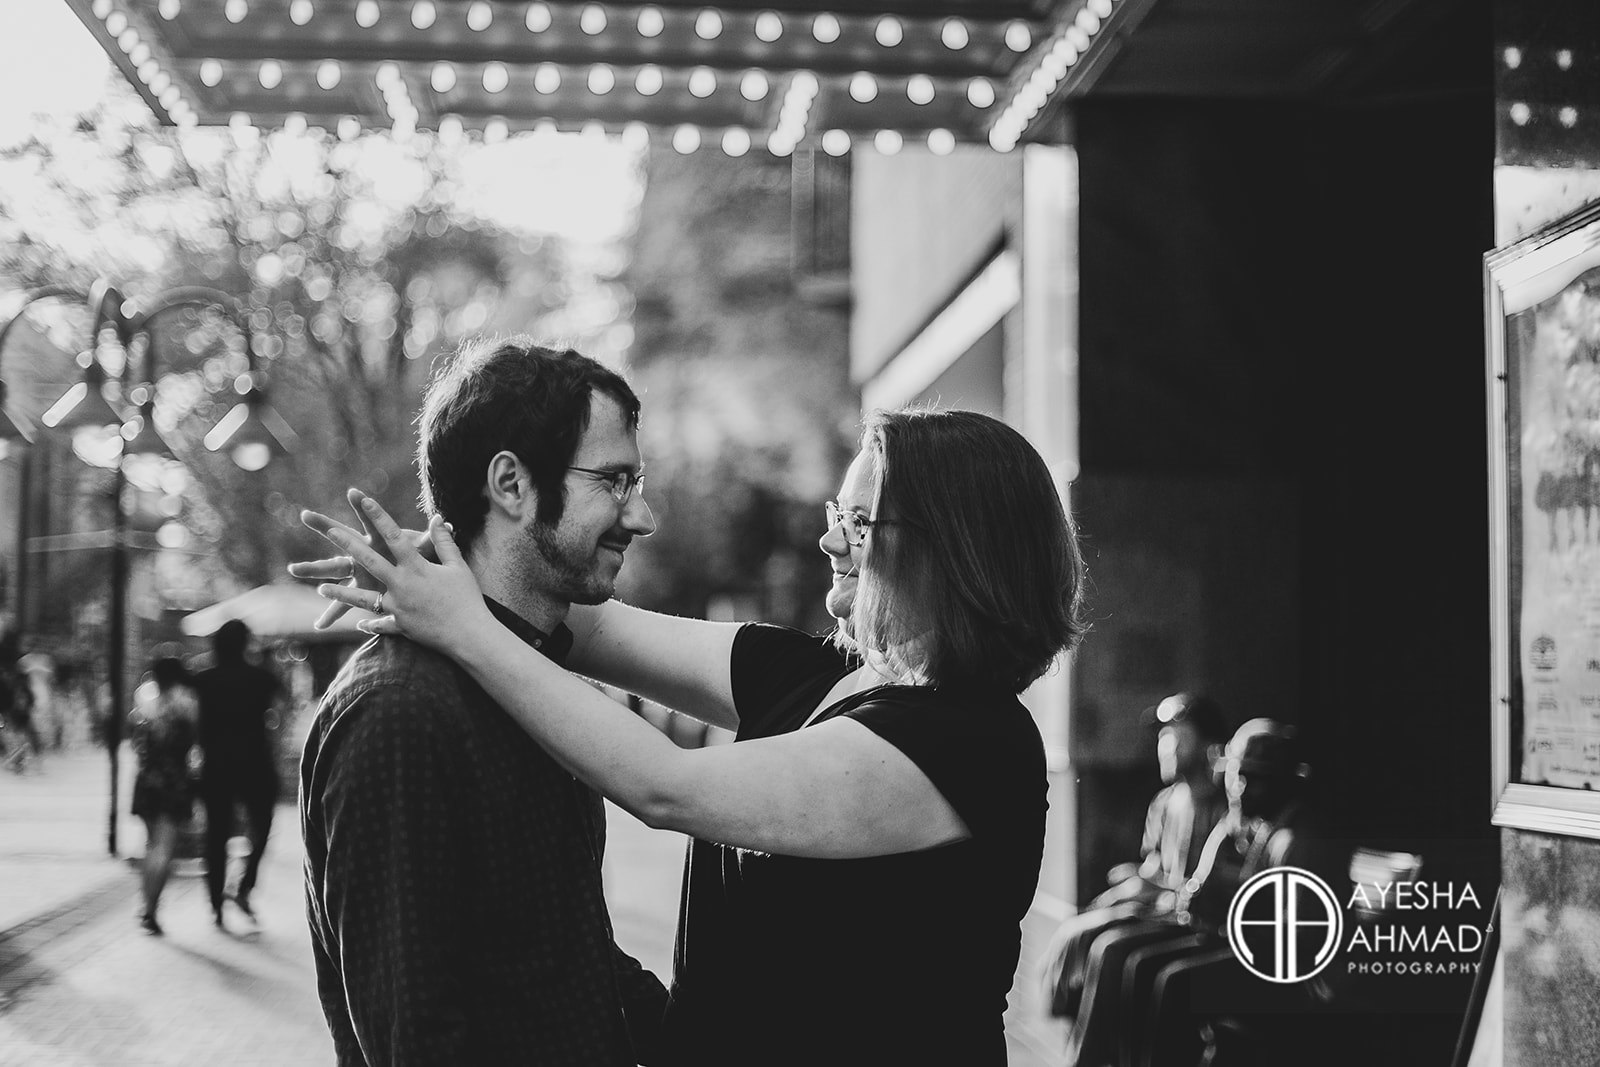 Jen and cameron hold embrace in front of The Paramount Theatre during couples session in Downtown Charlottesville Virginia Ayesha Ahmad Photography